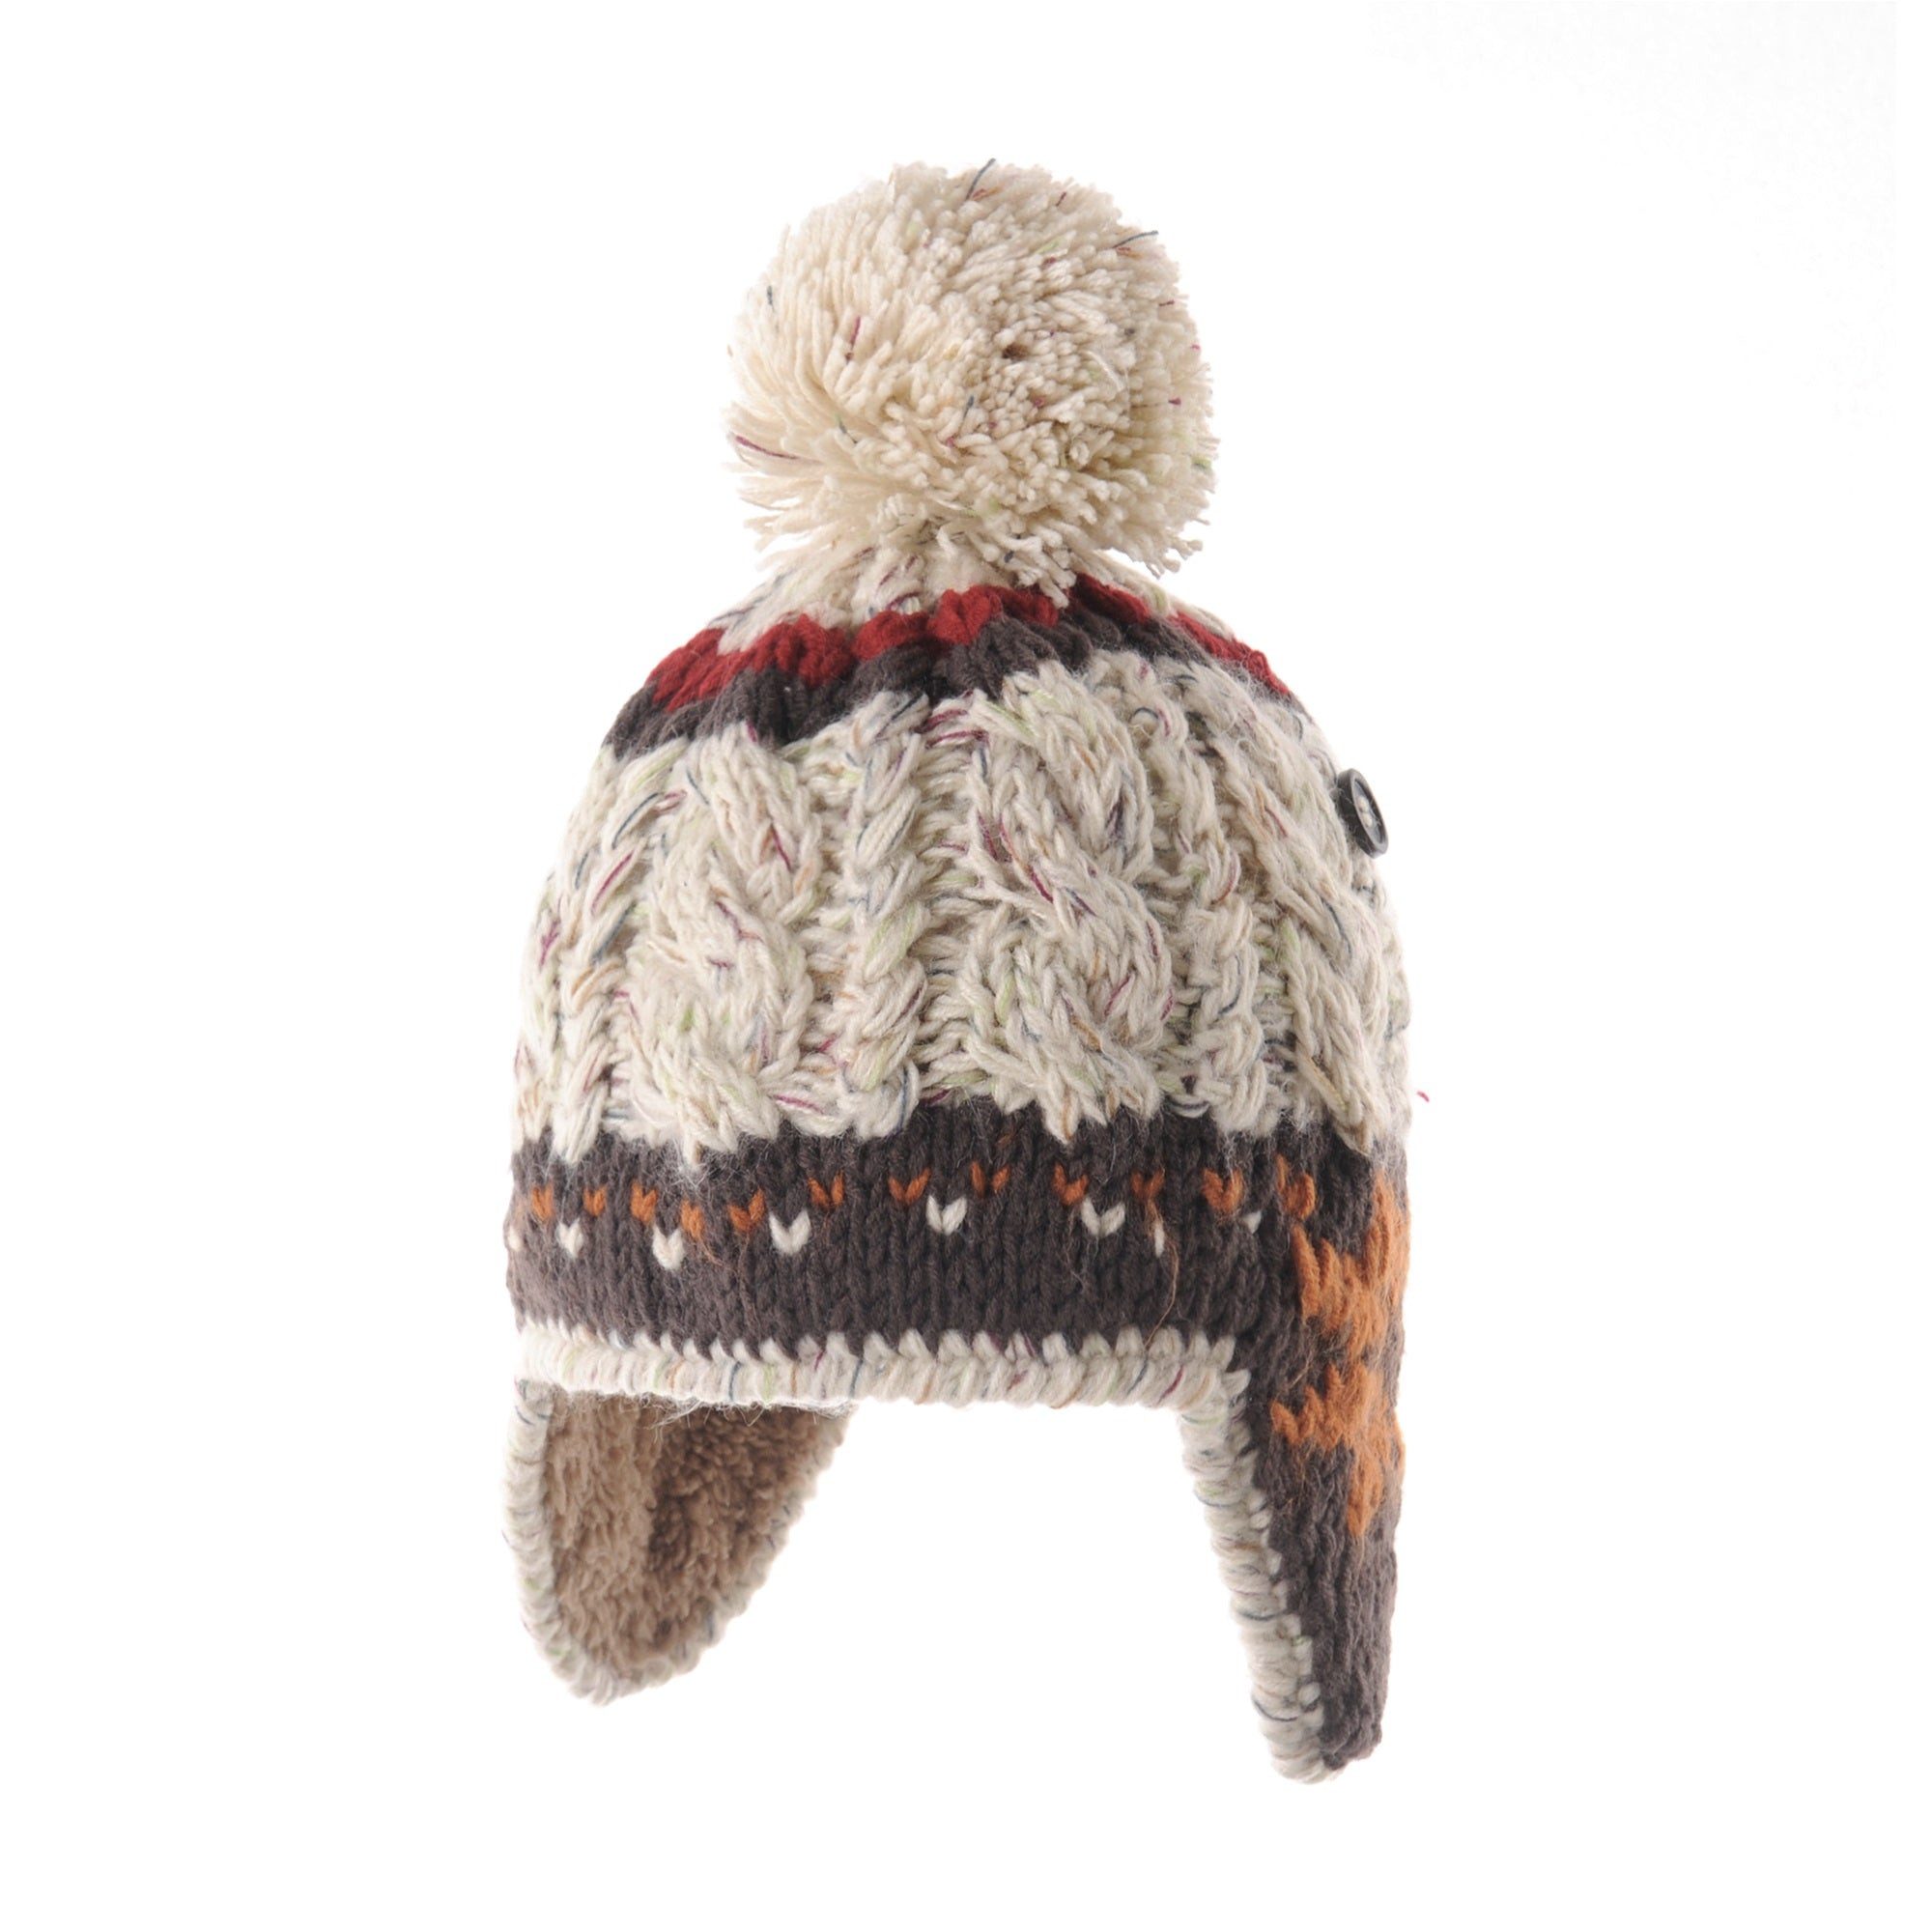 Knit Fleece Lined Fairs Isle Nordic Ear Flap Bobble Pom Beanie Hat